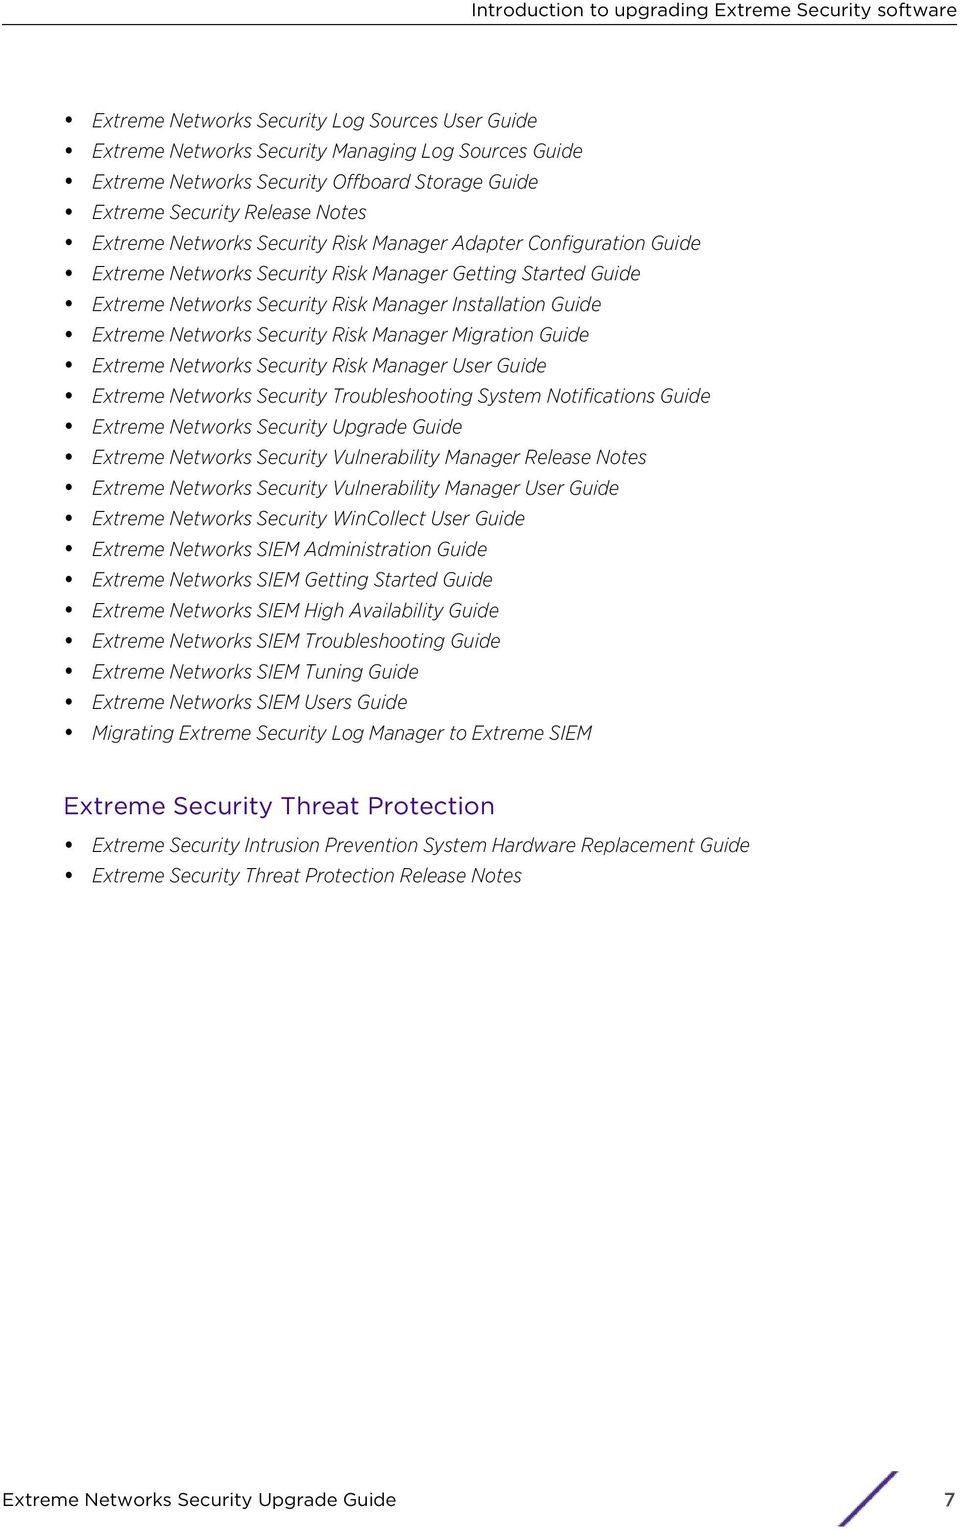 Manager Installation Guide Extreme Networks Security Risk Manager Migration Guide Extreme Networks Security Risk Manager User Guide Extreme Networks Security Troubleshooting System Notifications